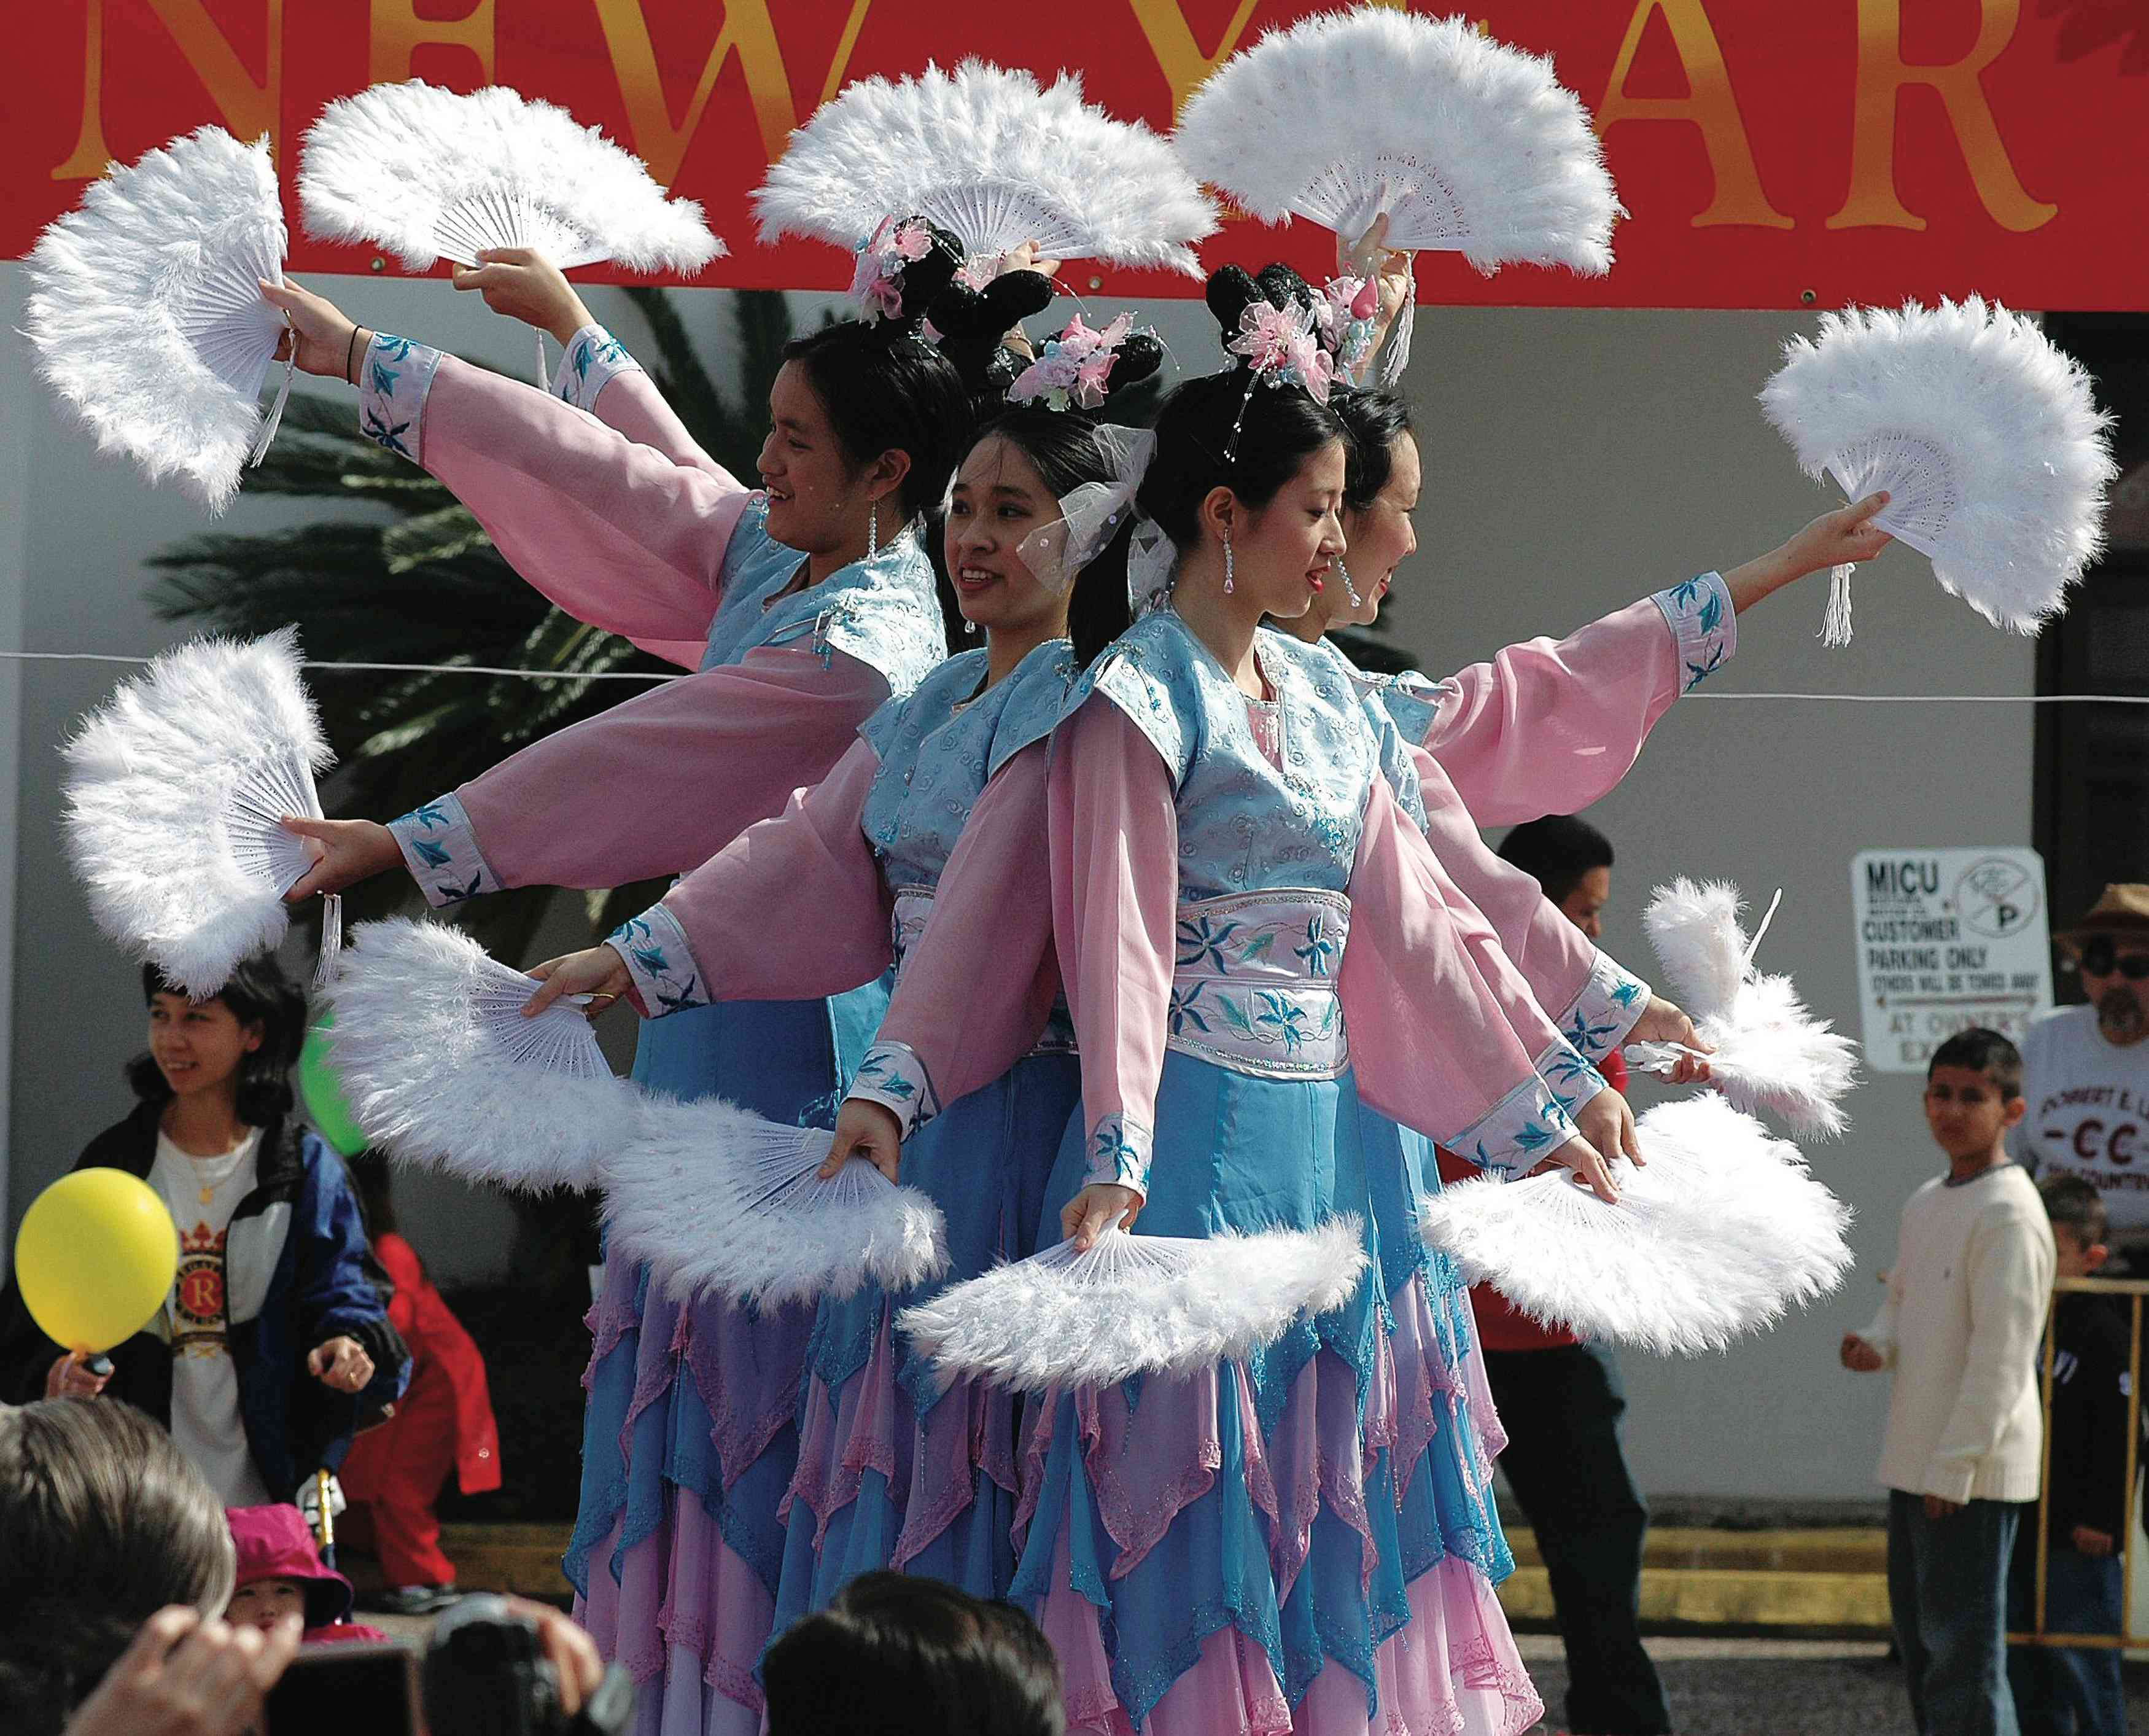 Dancers celebrating Chinese New Year in Houston's AsiaTown